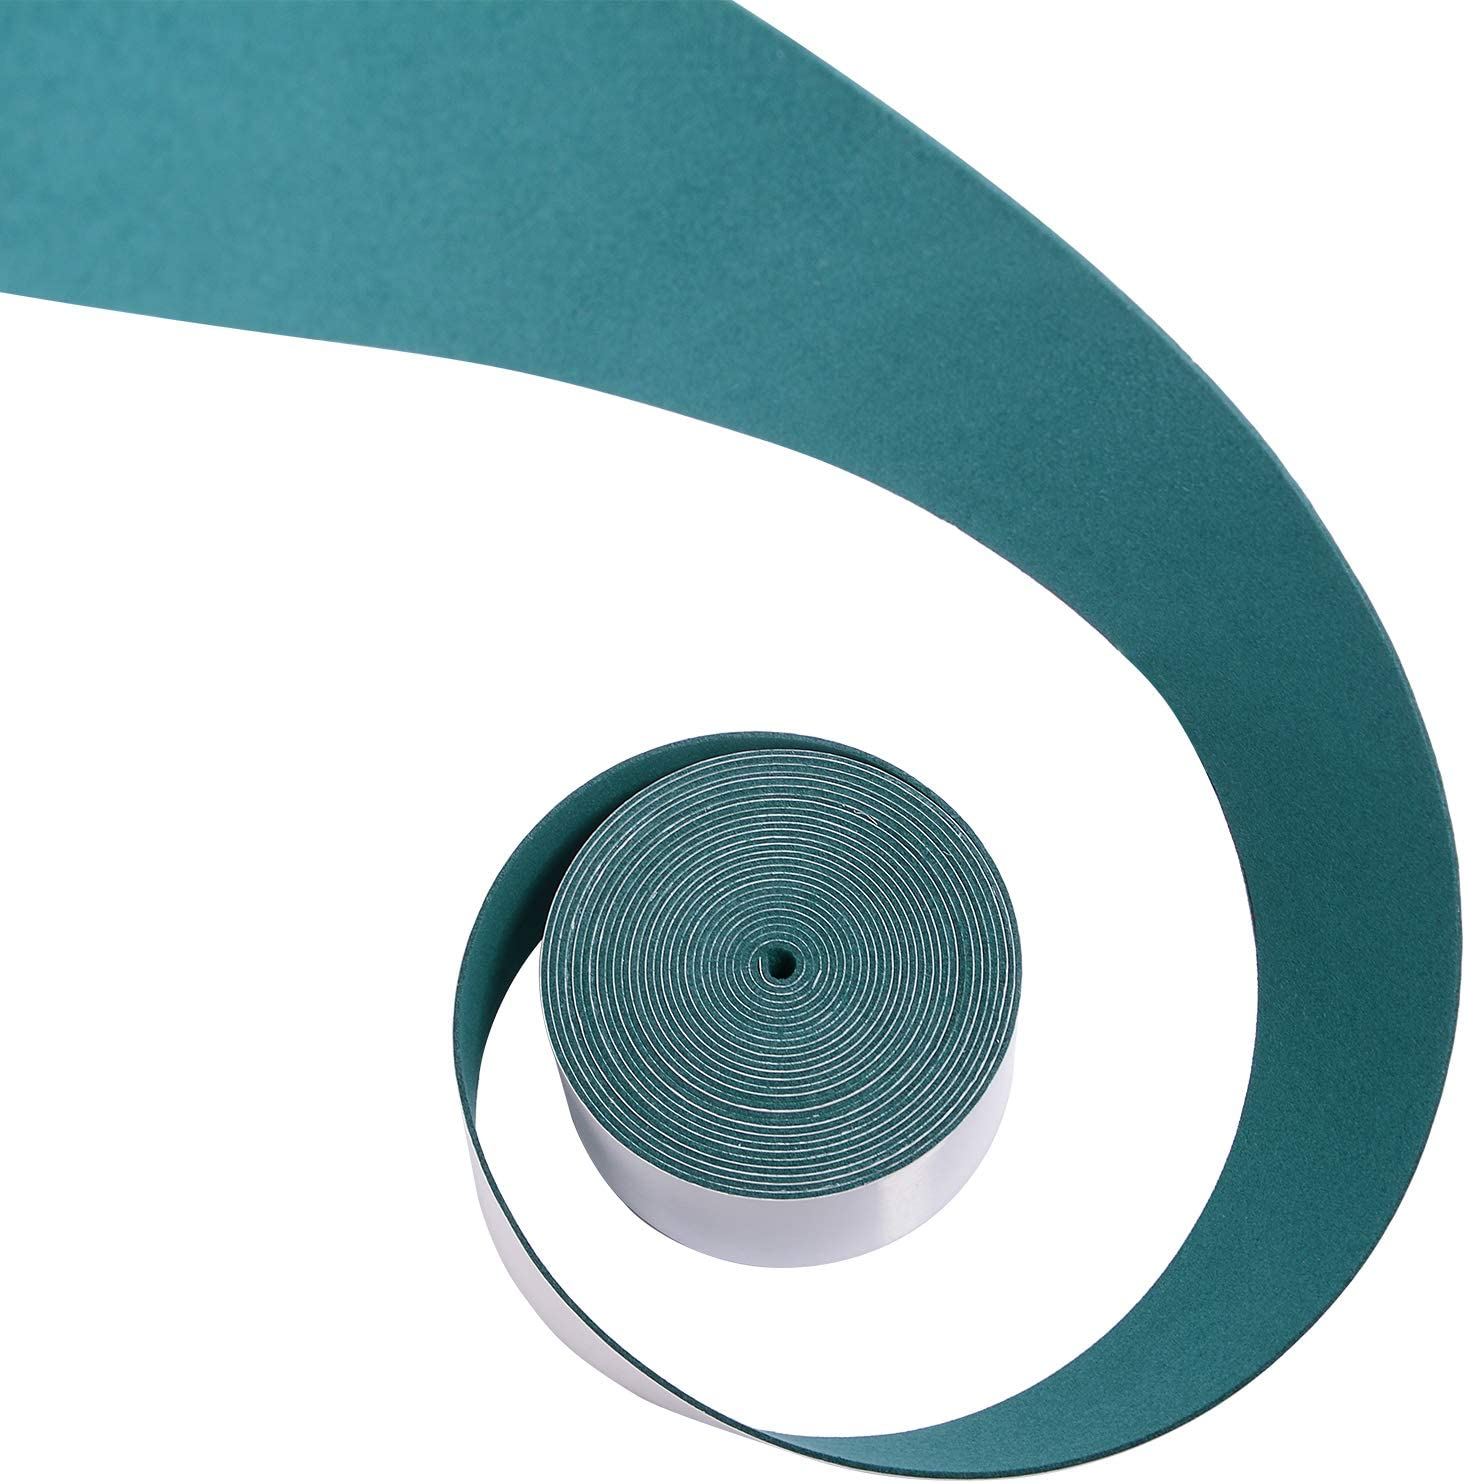 FOSHIO Micro Fiber Felt for Squeegee Edge Wrapping 5 Meters Length Dark Green Suede Felt to Cover The Edges of Hard Card Squeegees